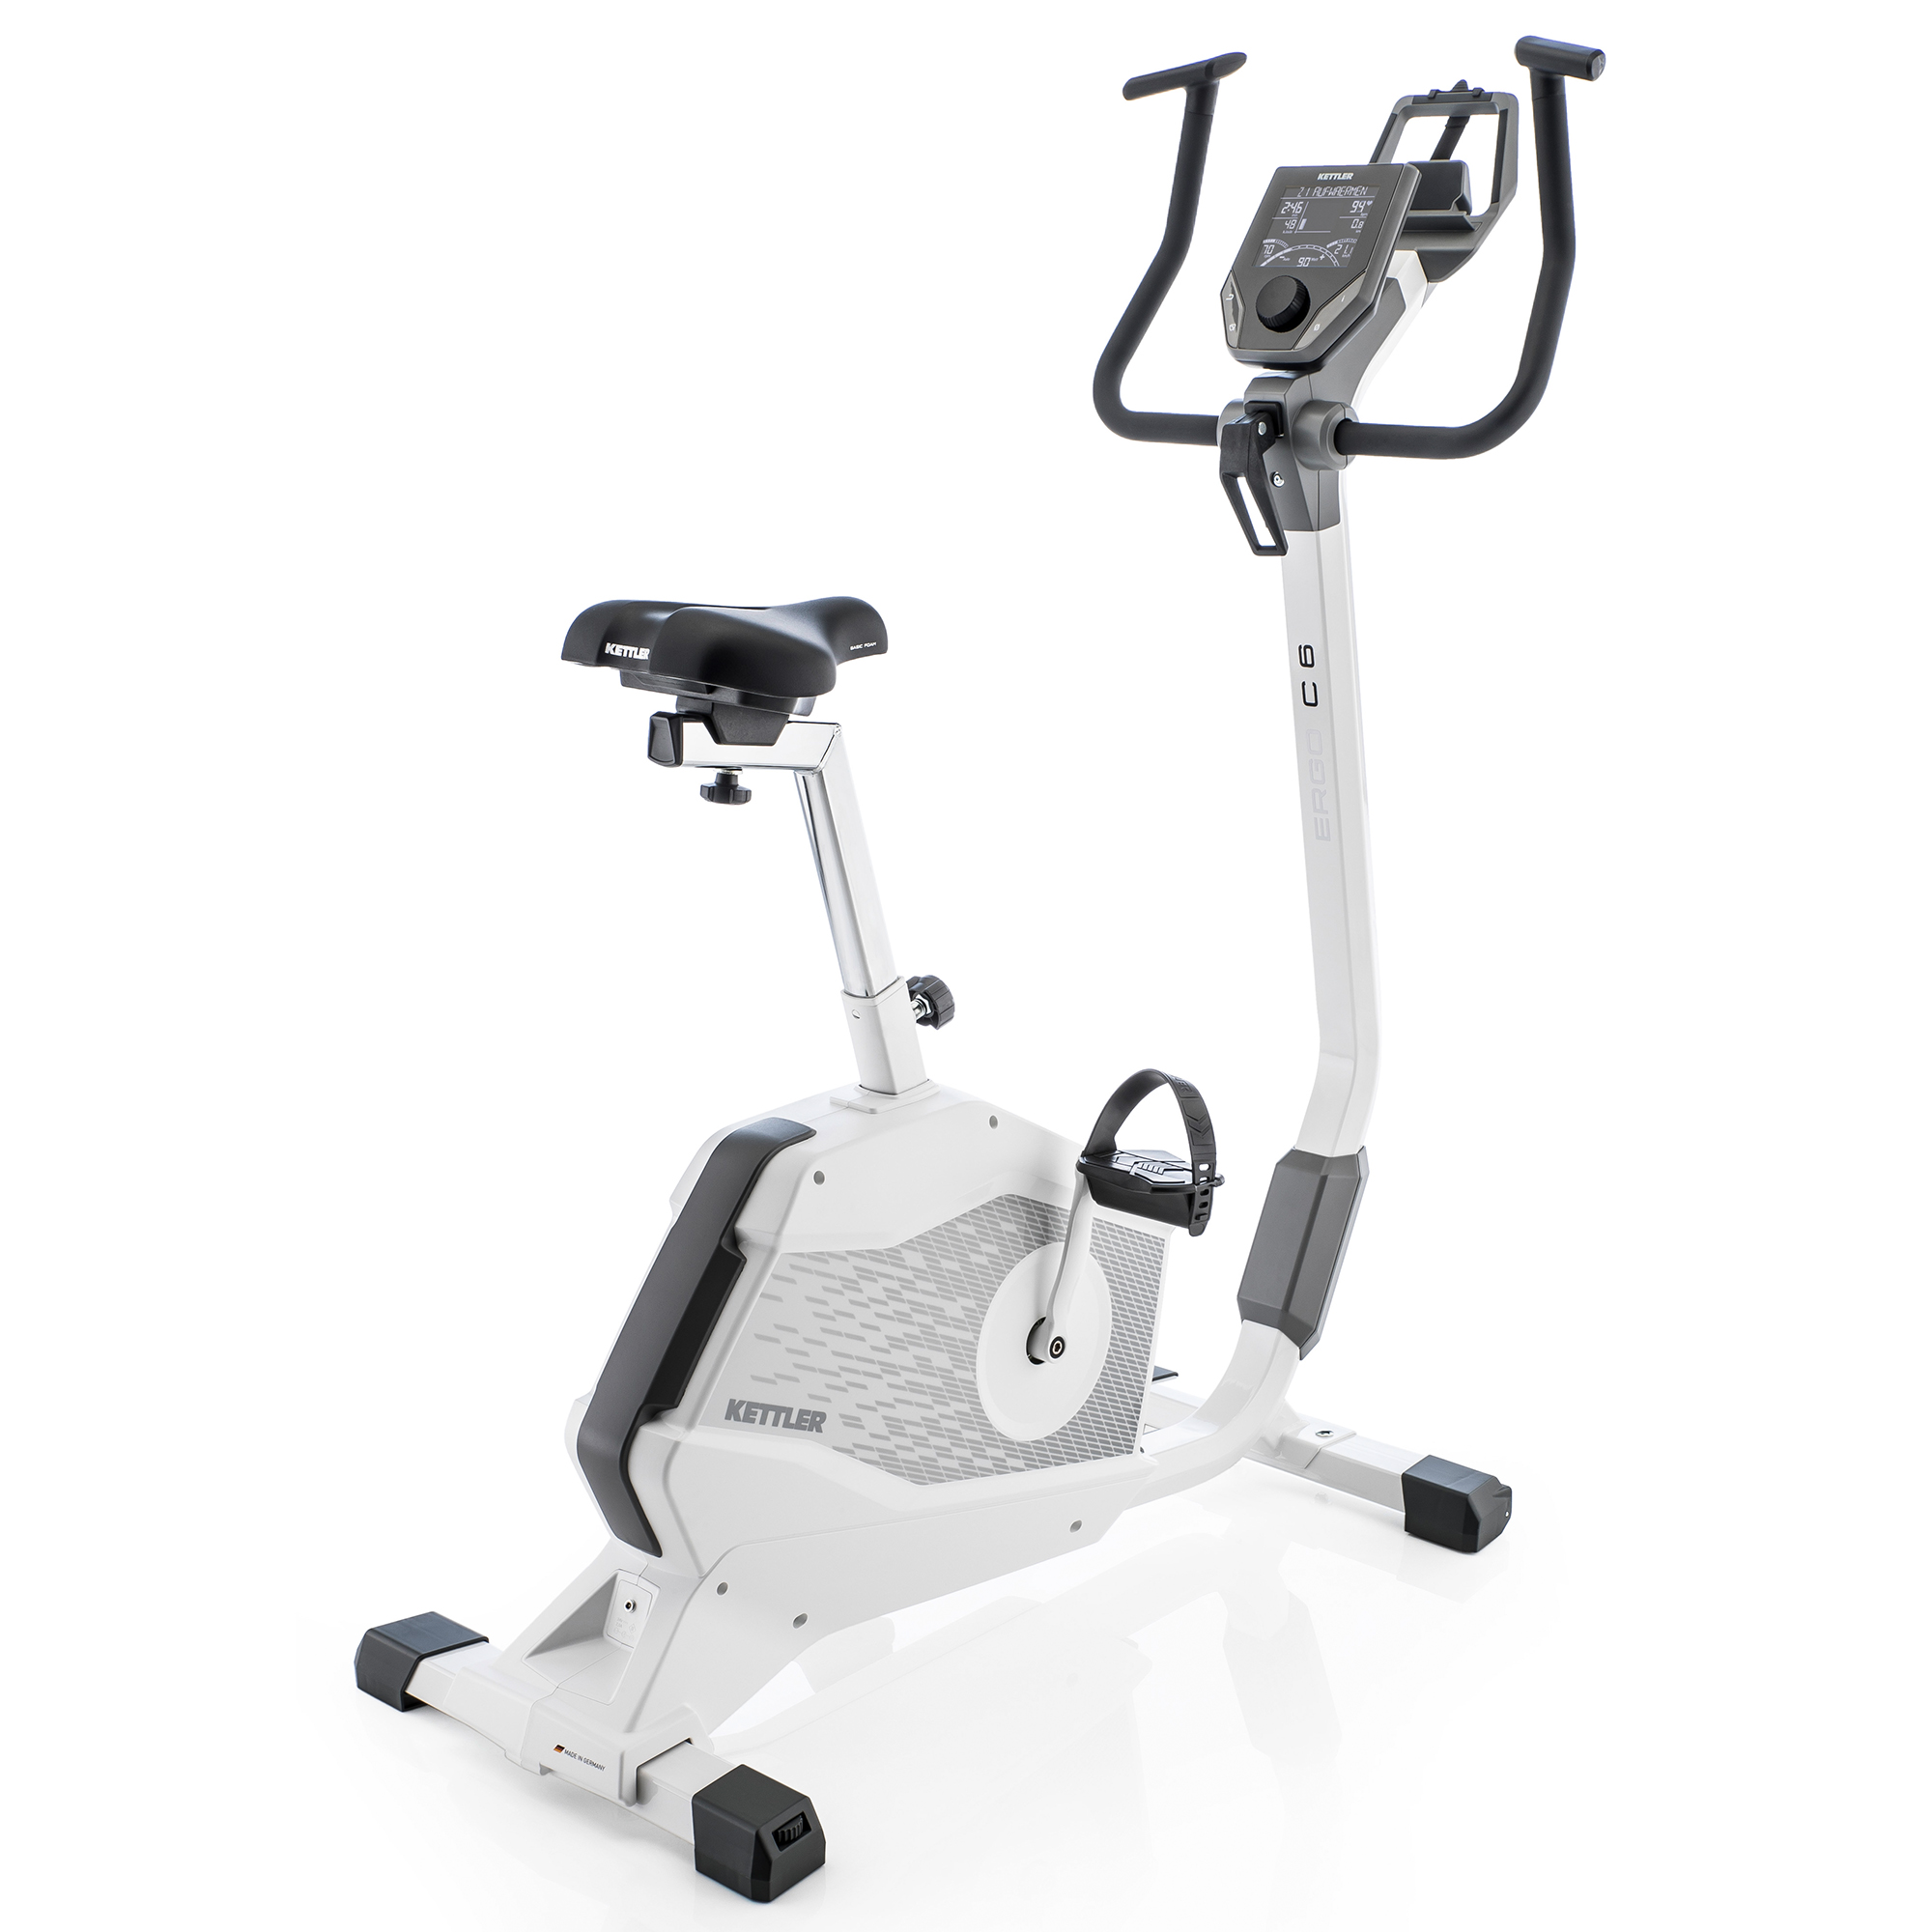 Kettler Fitness Kettler Exercise Bike Shop For Cheap Products And Save